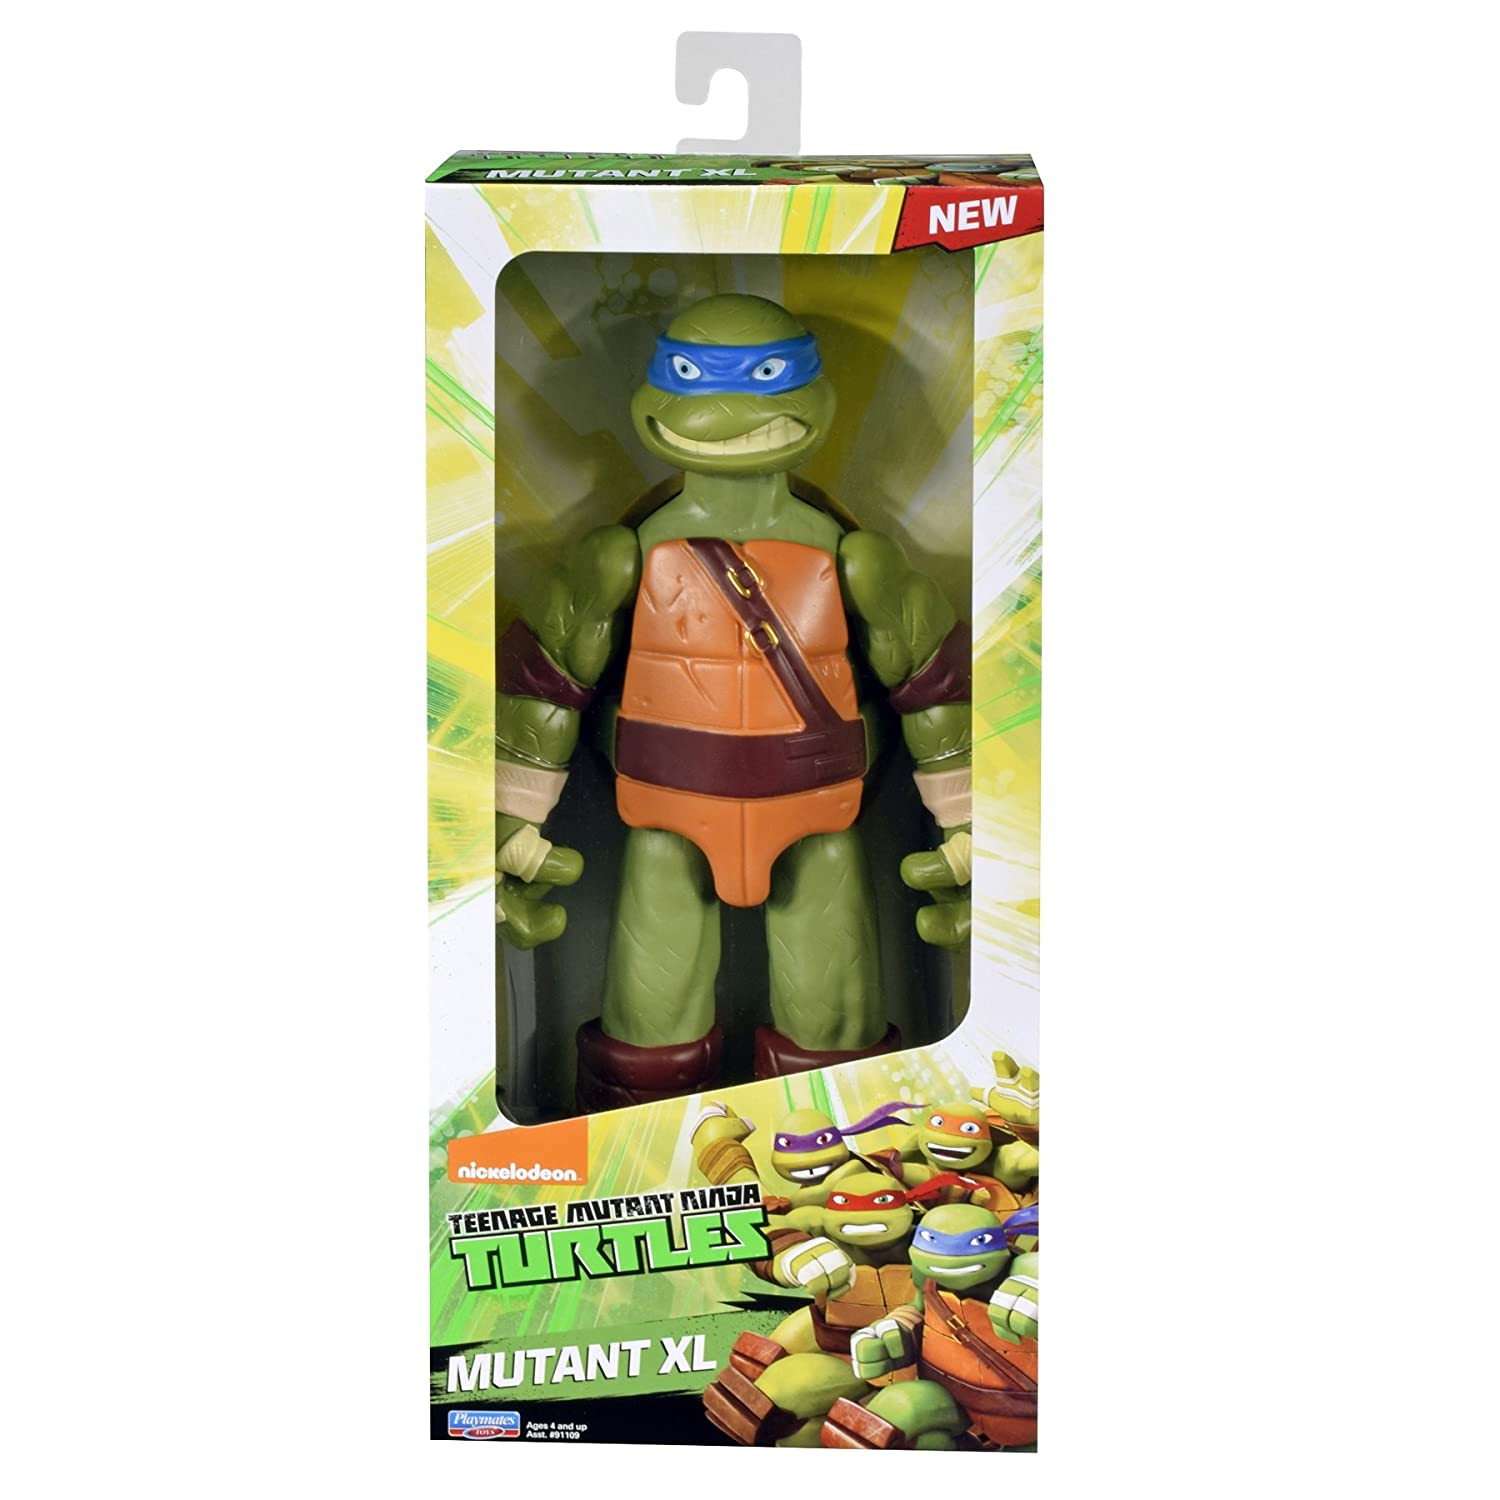 Amazon.com: Teenage Mutant Ninja Turtles XL, Leo: Toys & Games